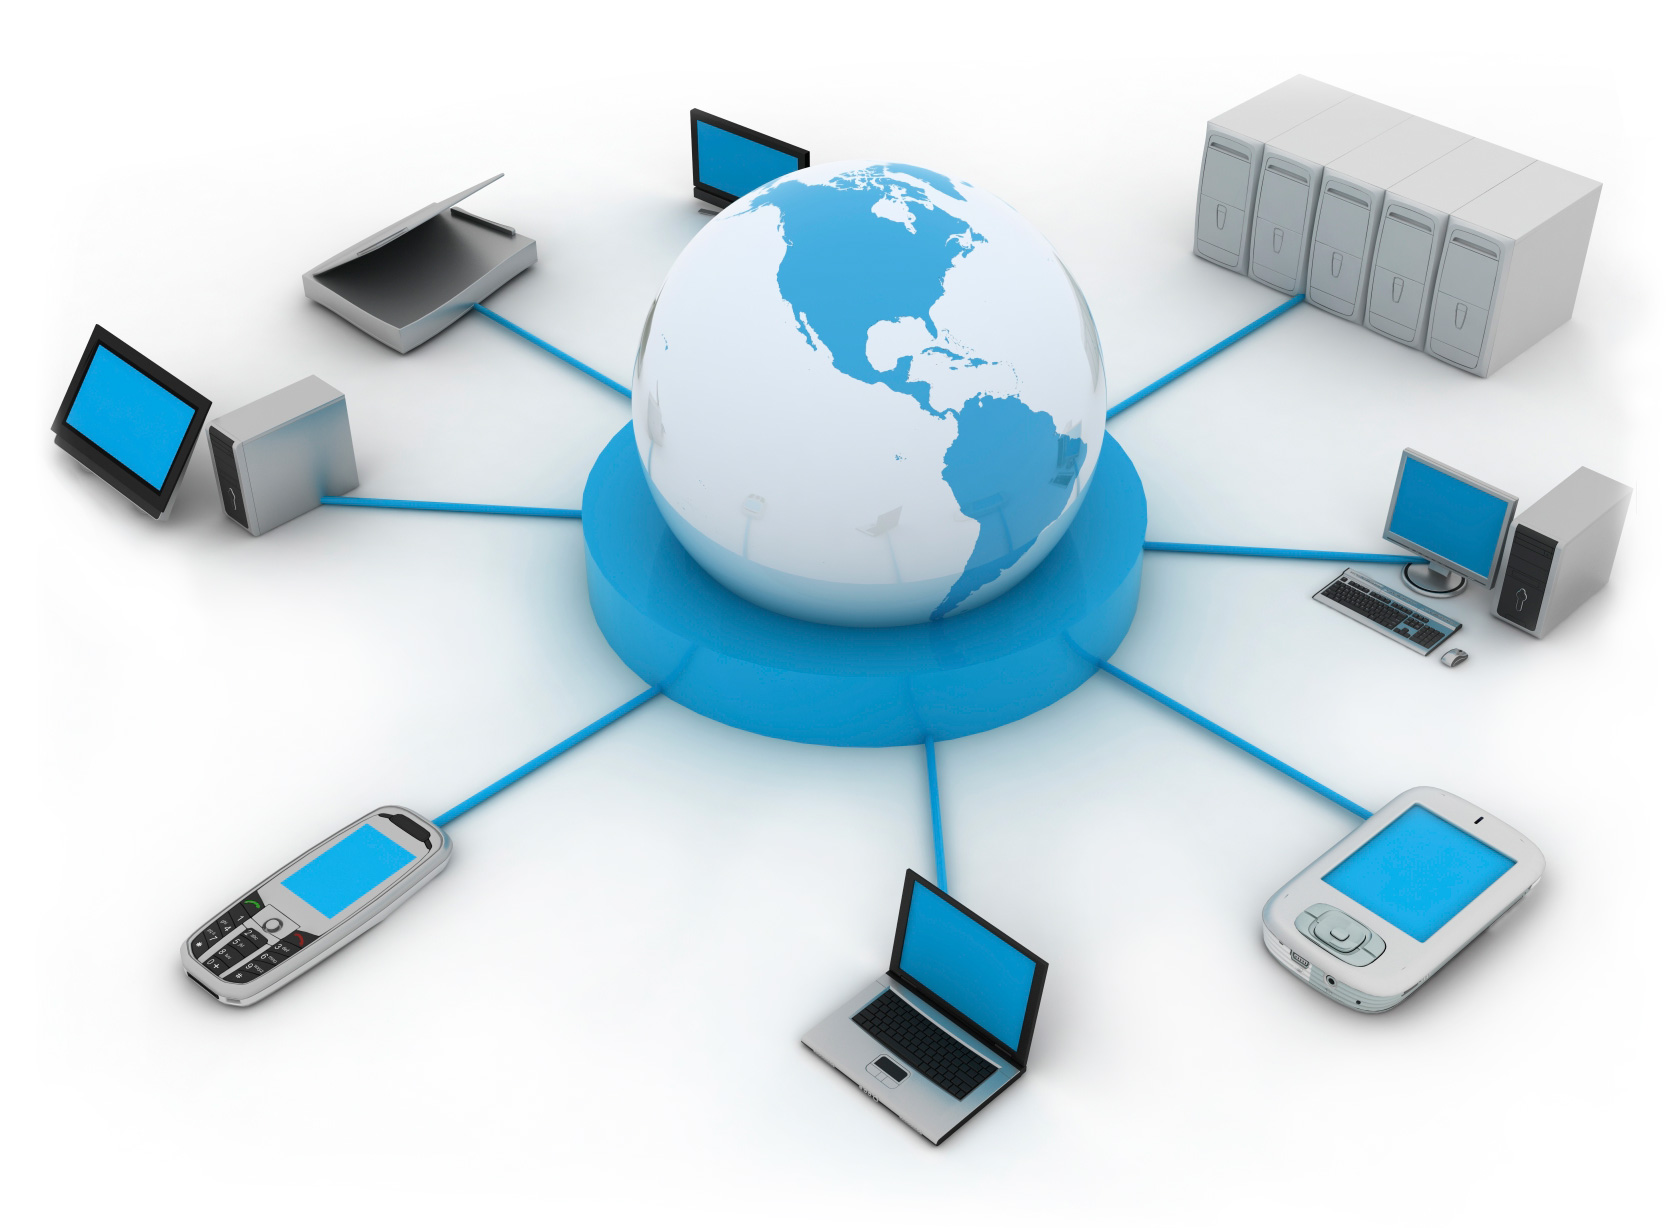 VoIP methods and it's characteristics